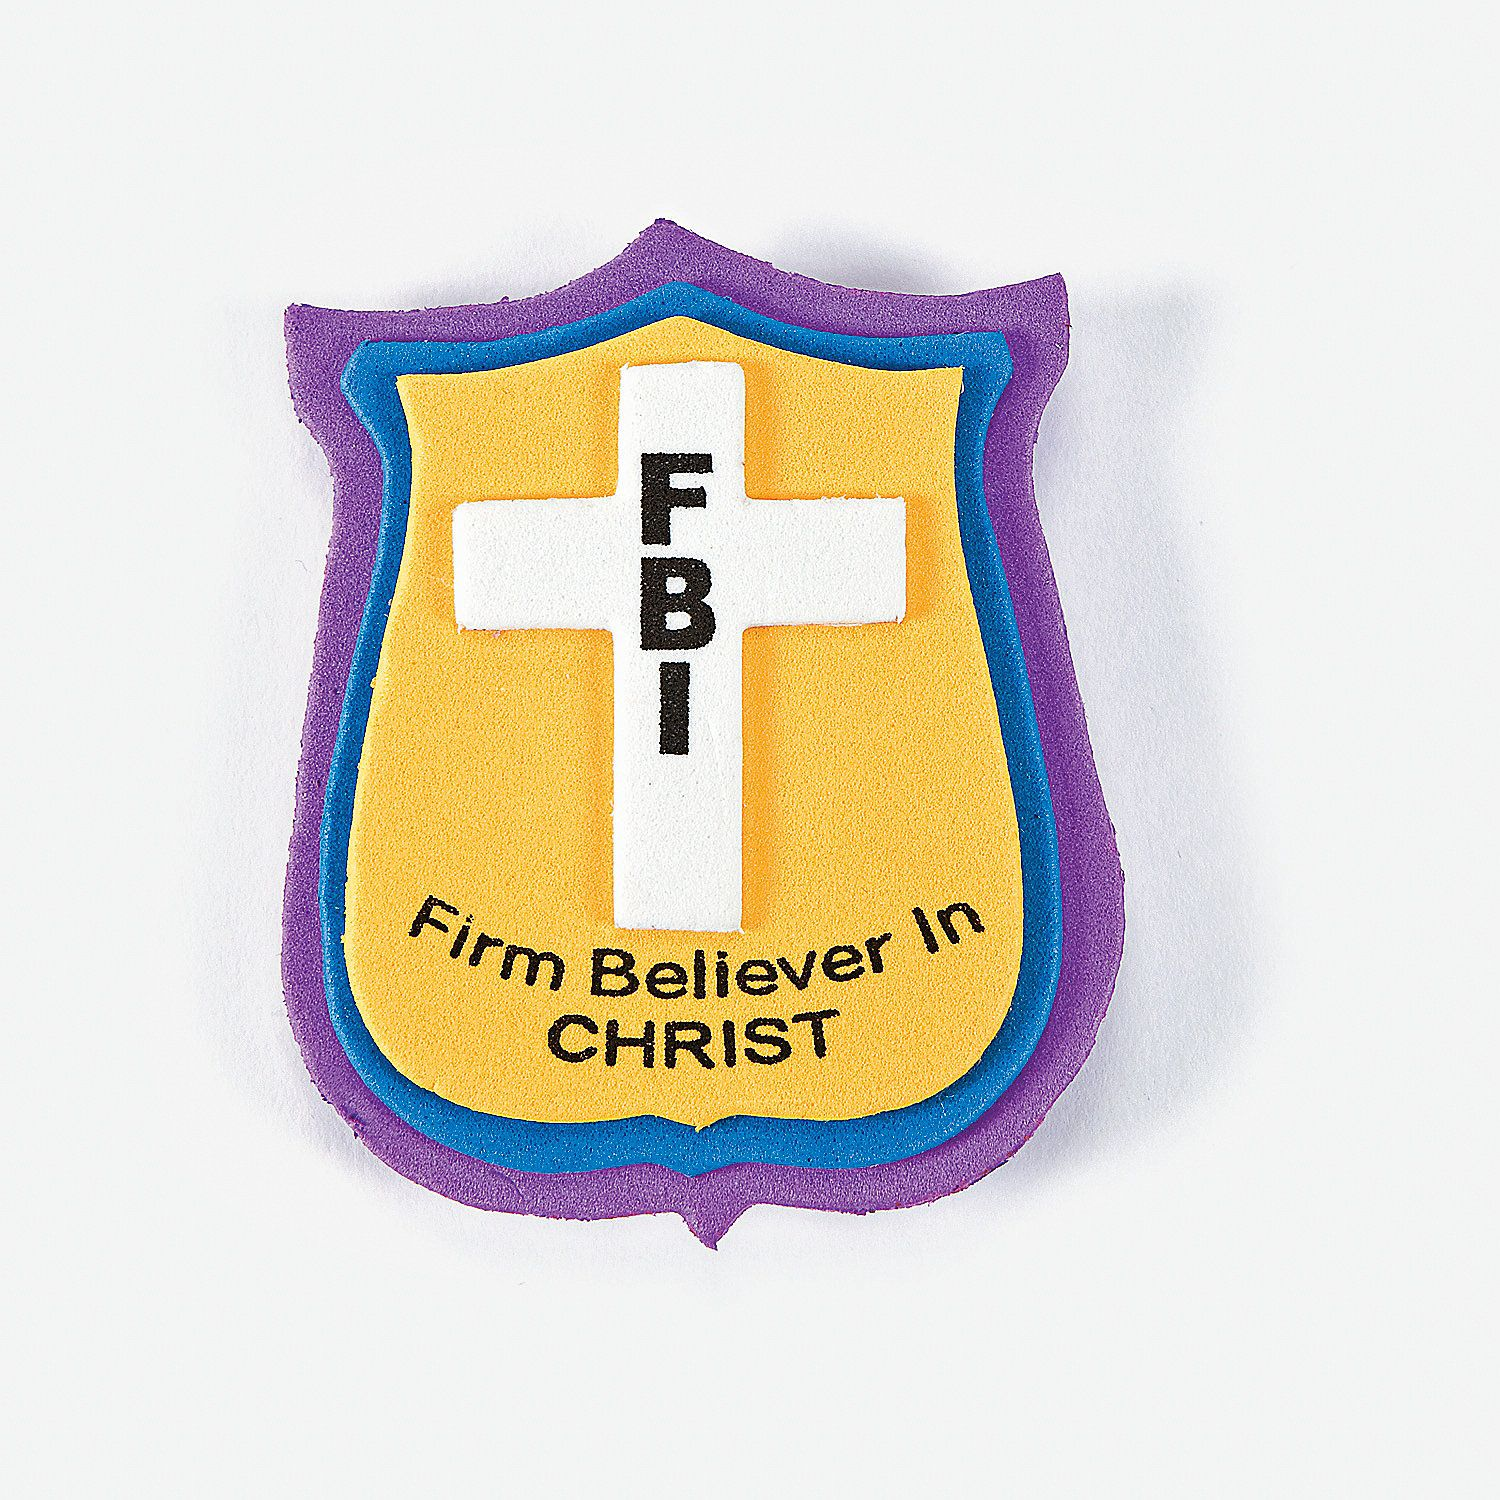 Oriental trading christian crafts -  Firm Believer In Christ Pin Craft Kit Orientaltrading Com